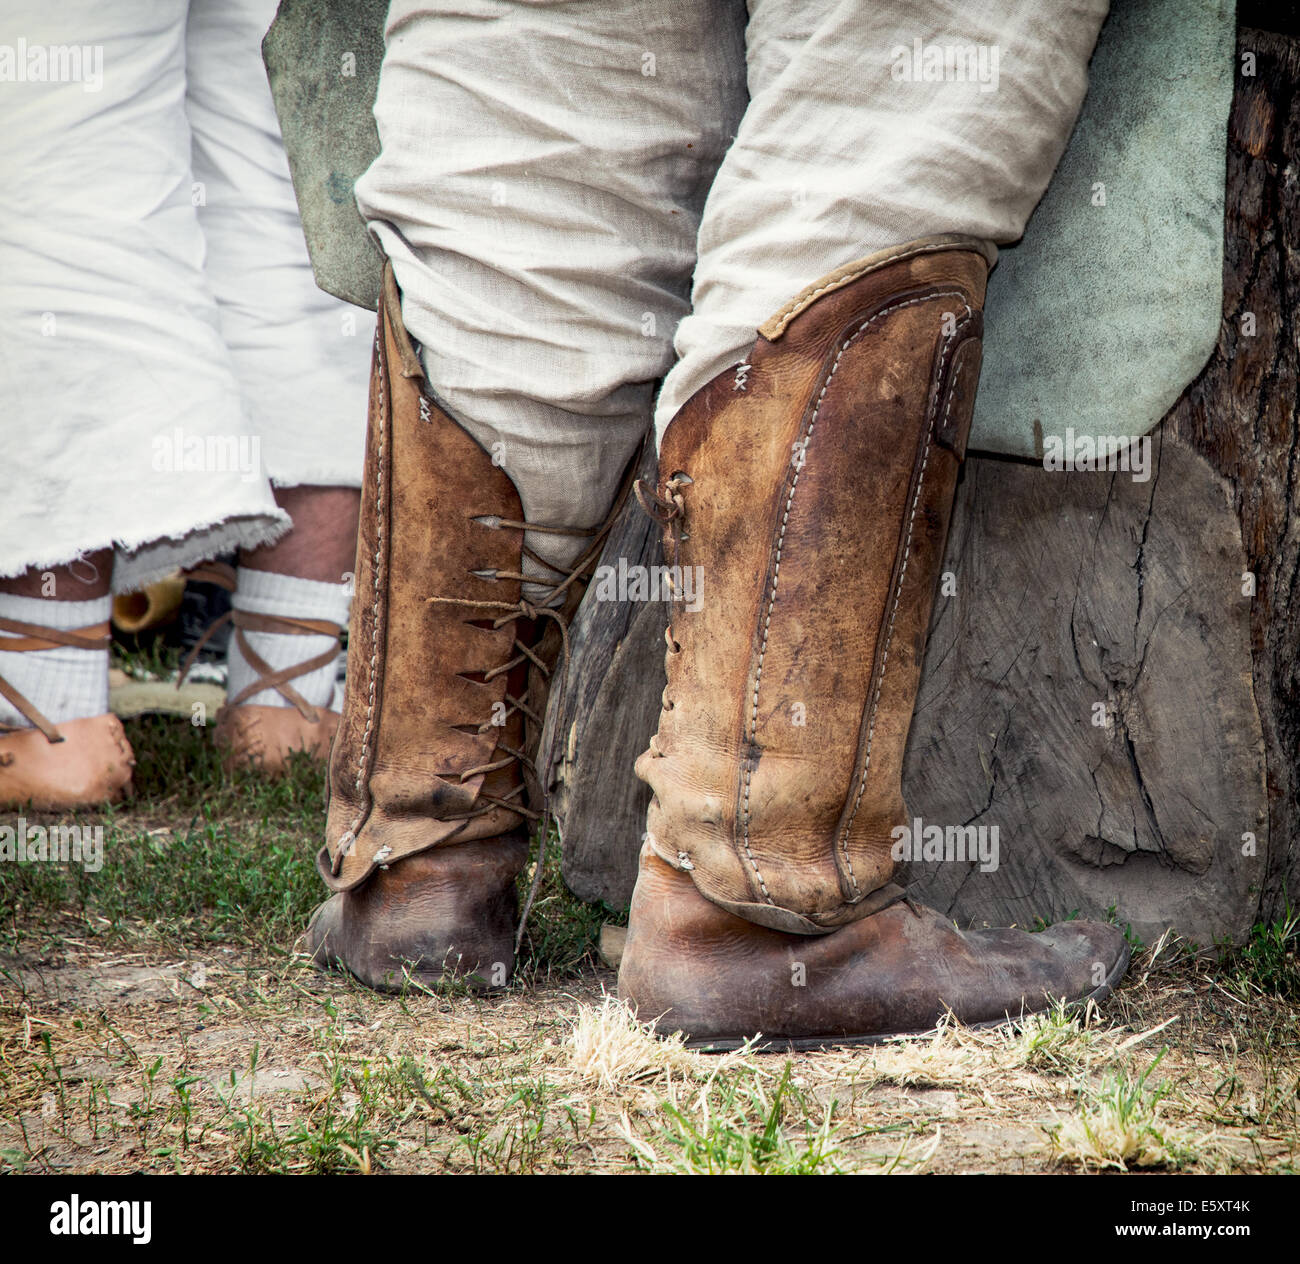 df27512081e70 Historical Shoes Stock Photos & Historical Shoes Stock Images - Alamy